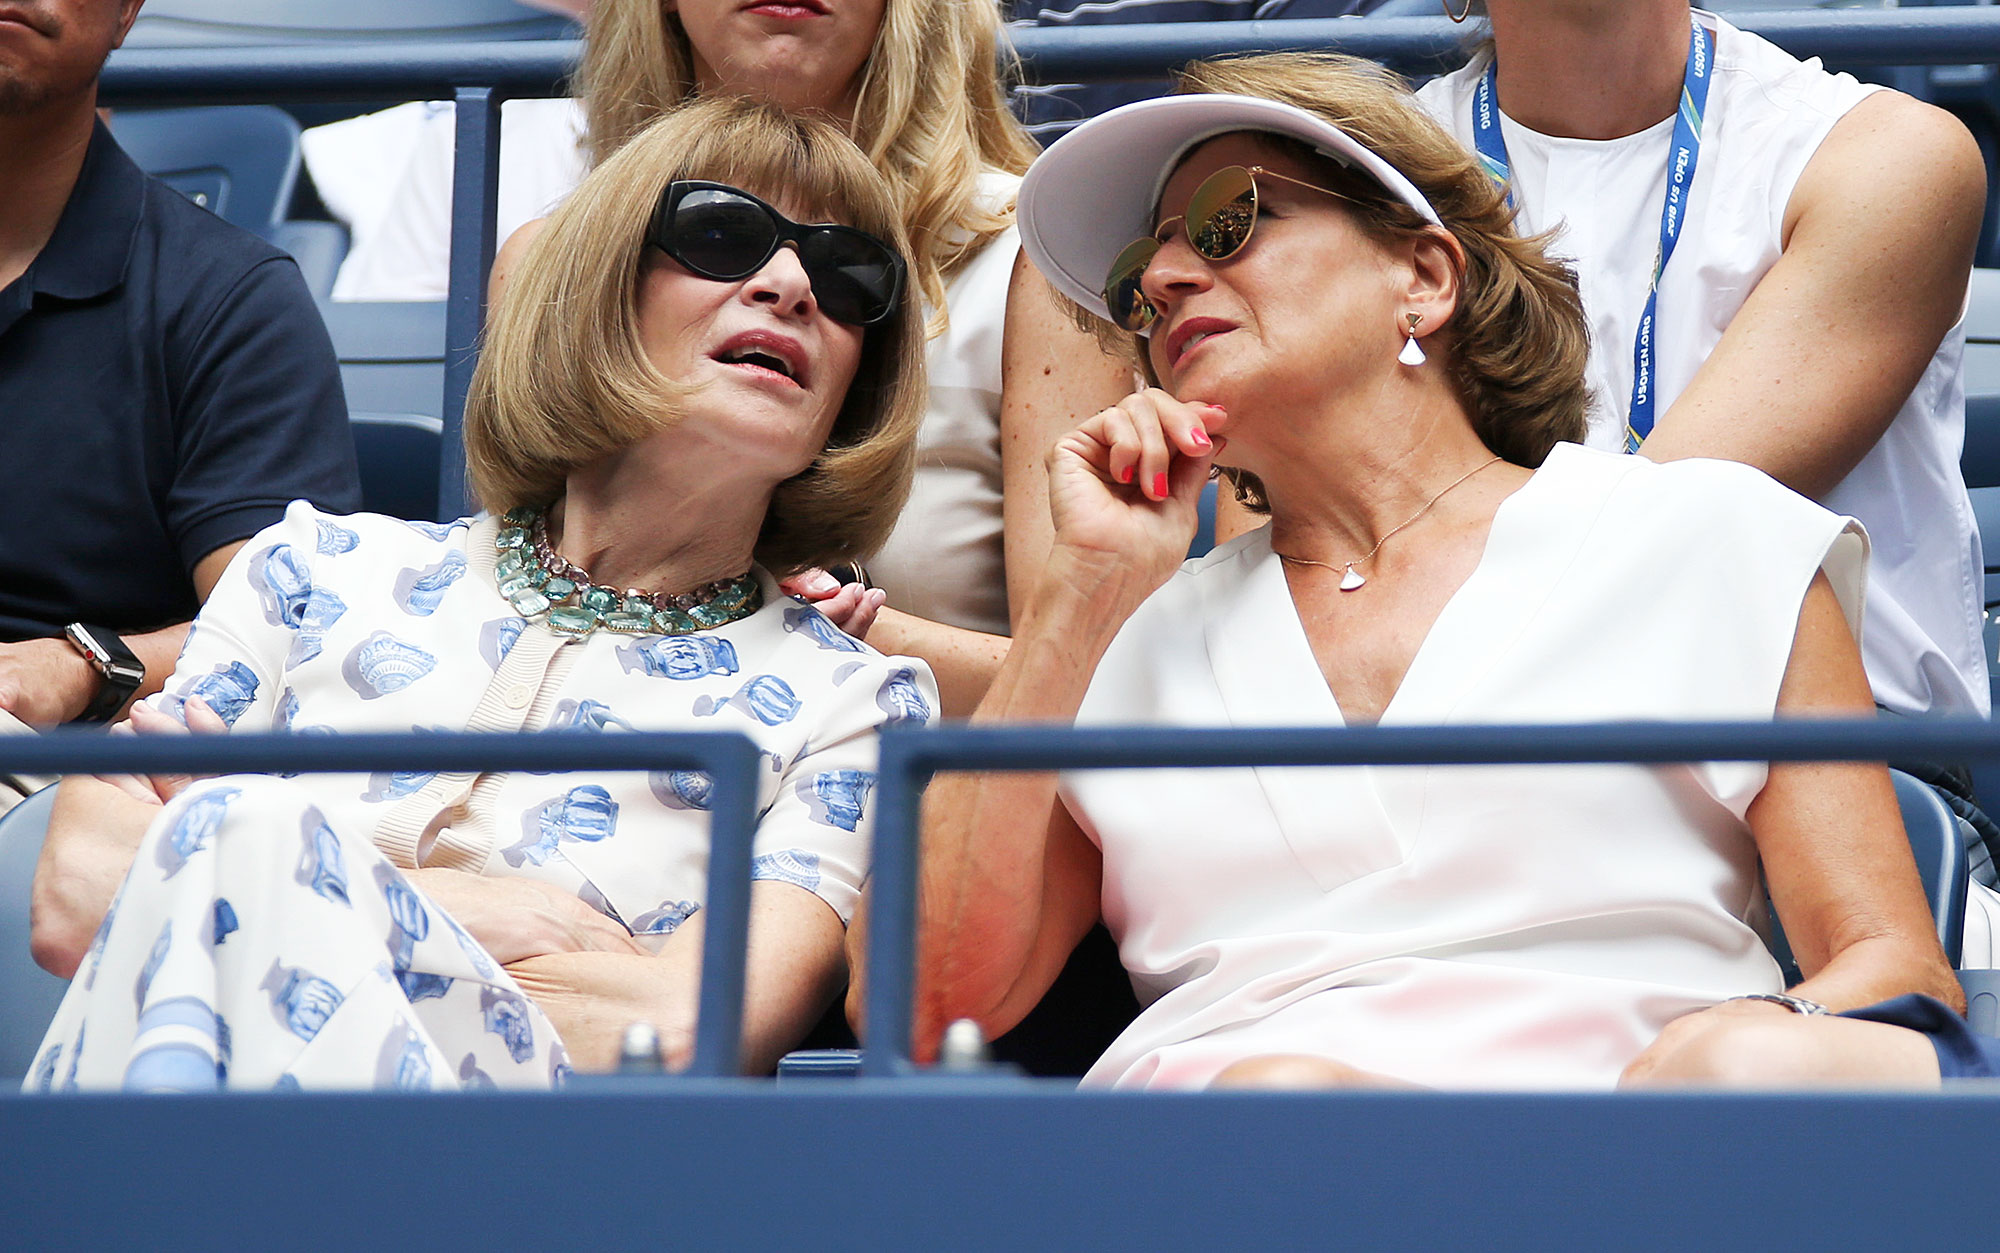 Anna Wintour Lynette Federer Us Open 2018 - Wintour also talked with Roger Federer's mother during his August 30 match.